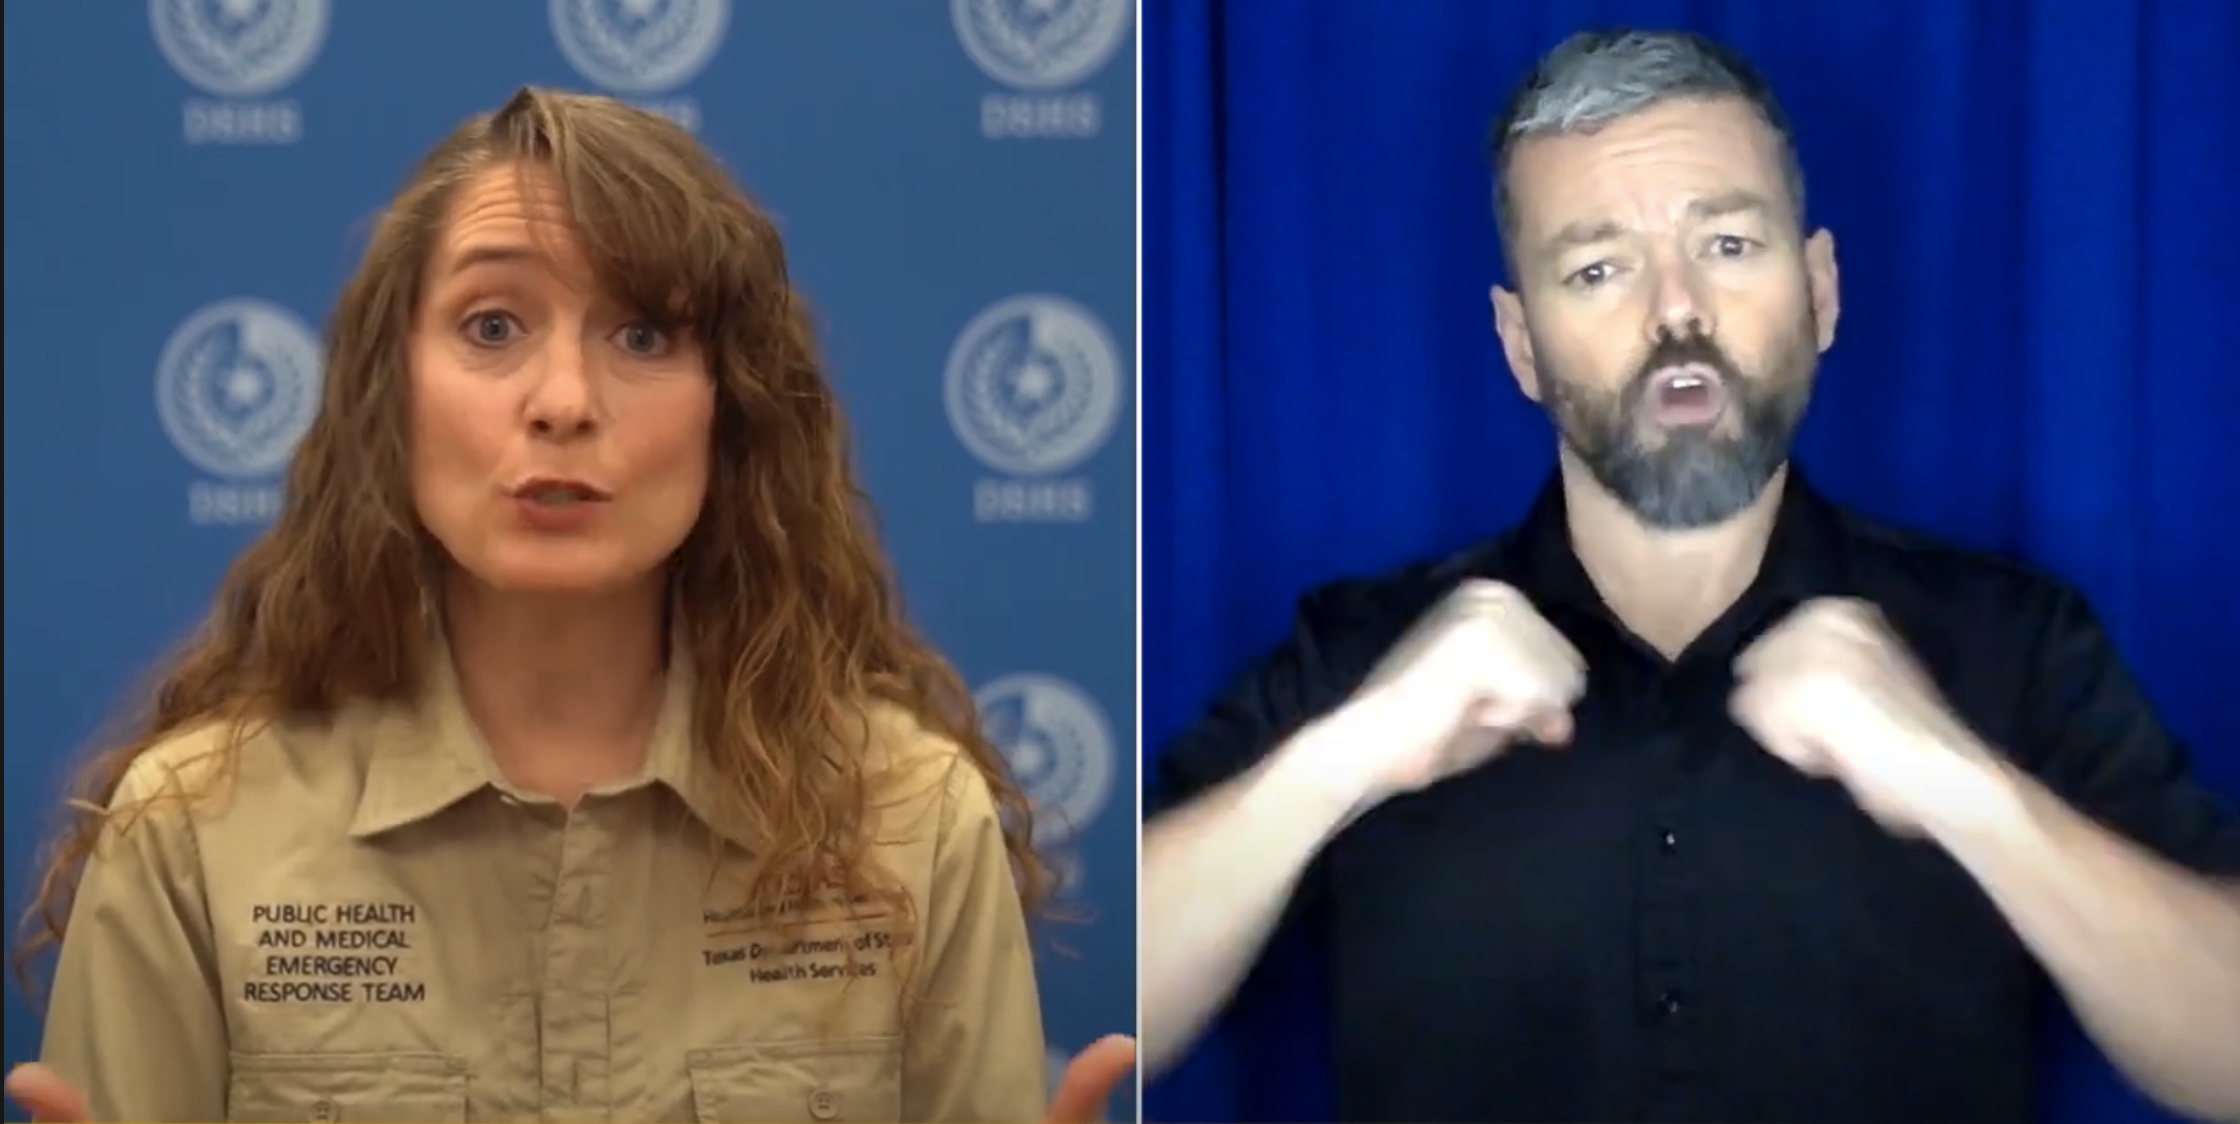 The image shows a split screen. A light skinned woman with brown hair and shirt is in front of a blue DSHS pattern backdrop. On the right, a light-skinned male wearing a black shirts signs in front of a blue background.